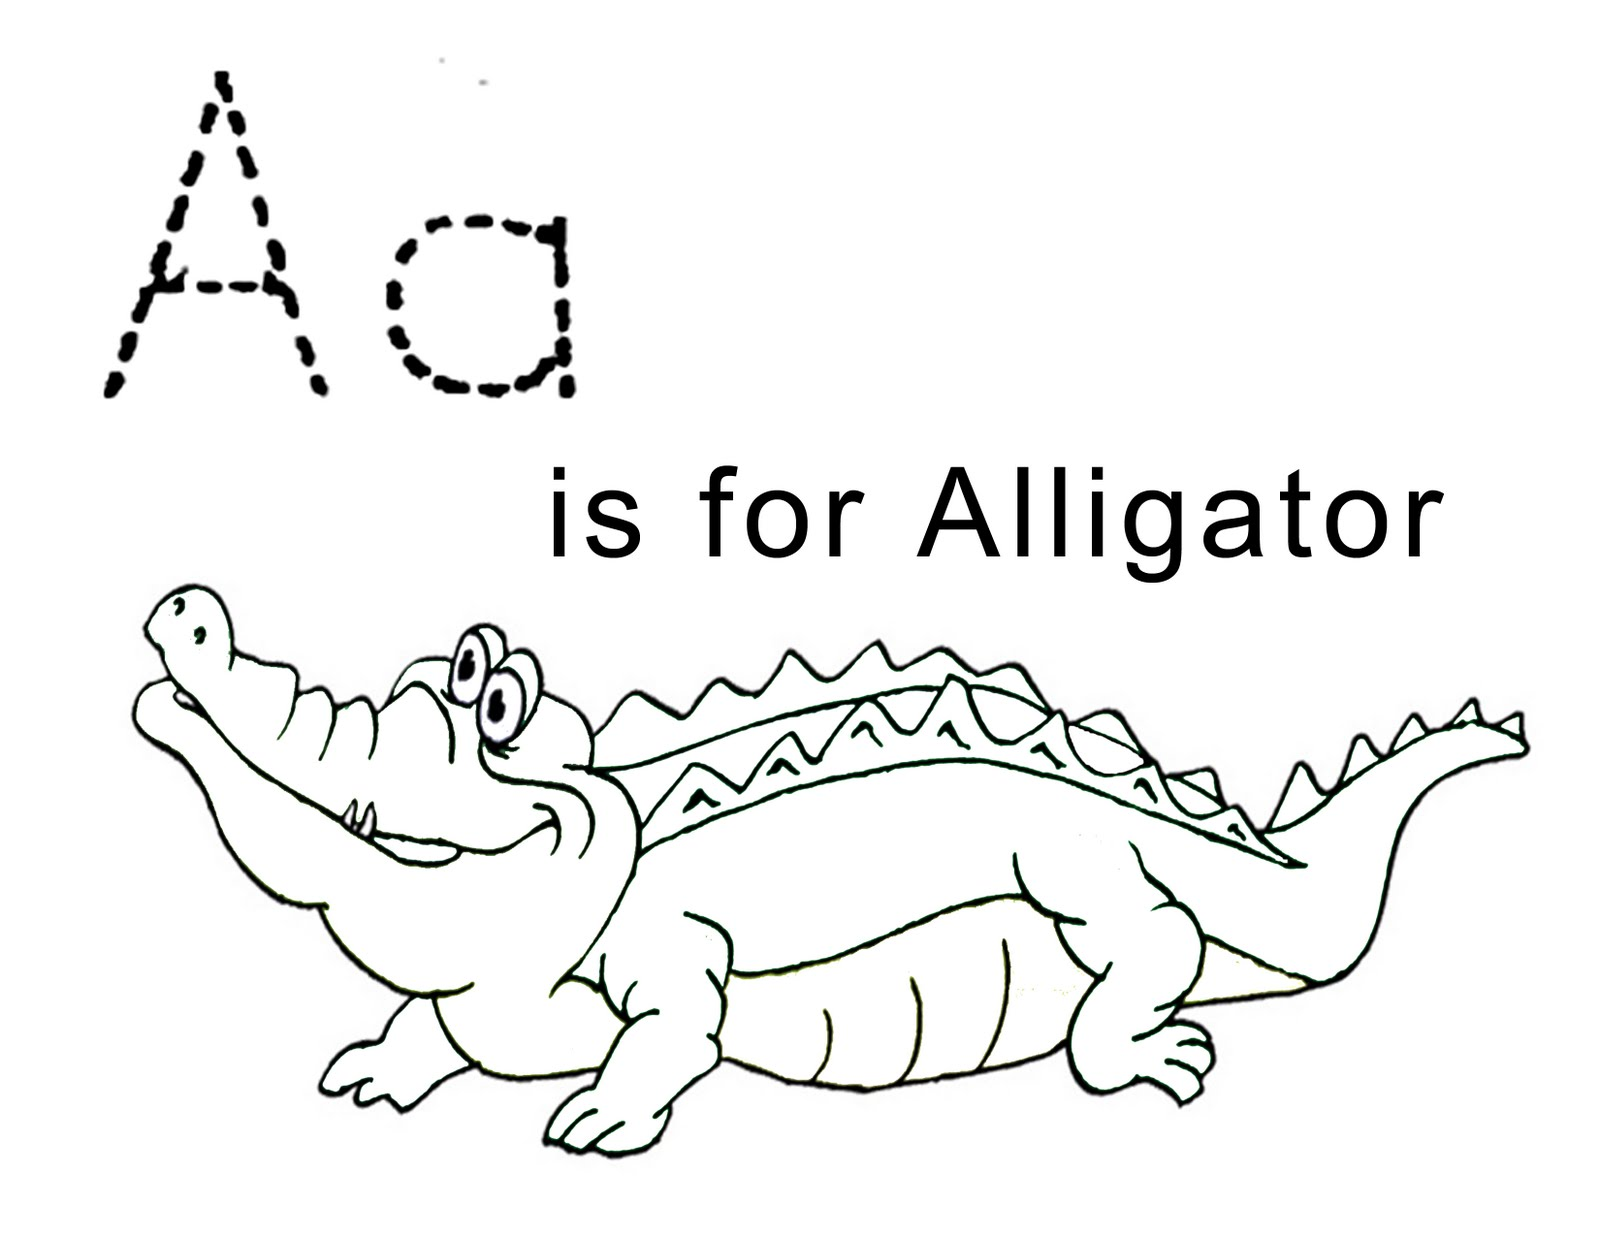 alligator coloring pages free - photo#2